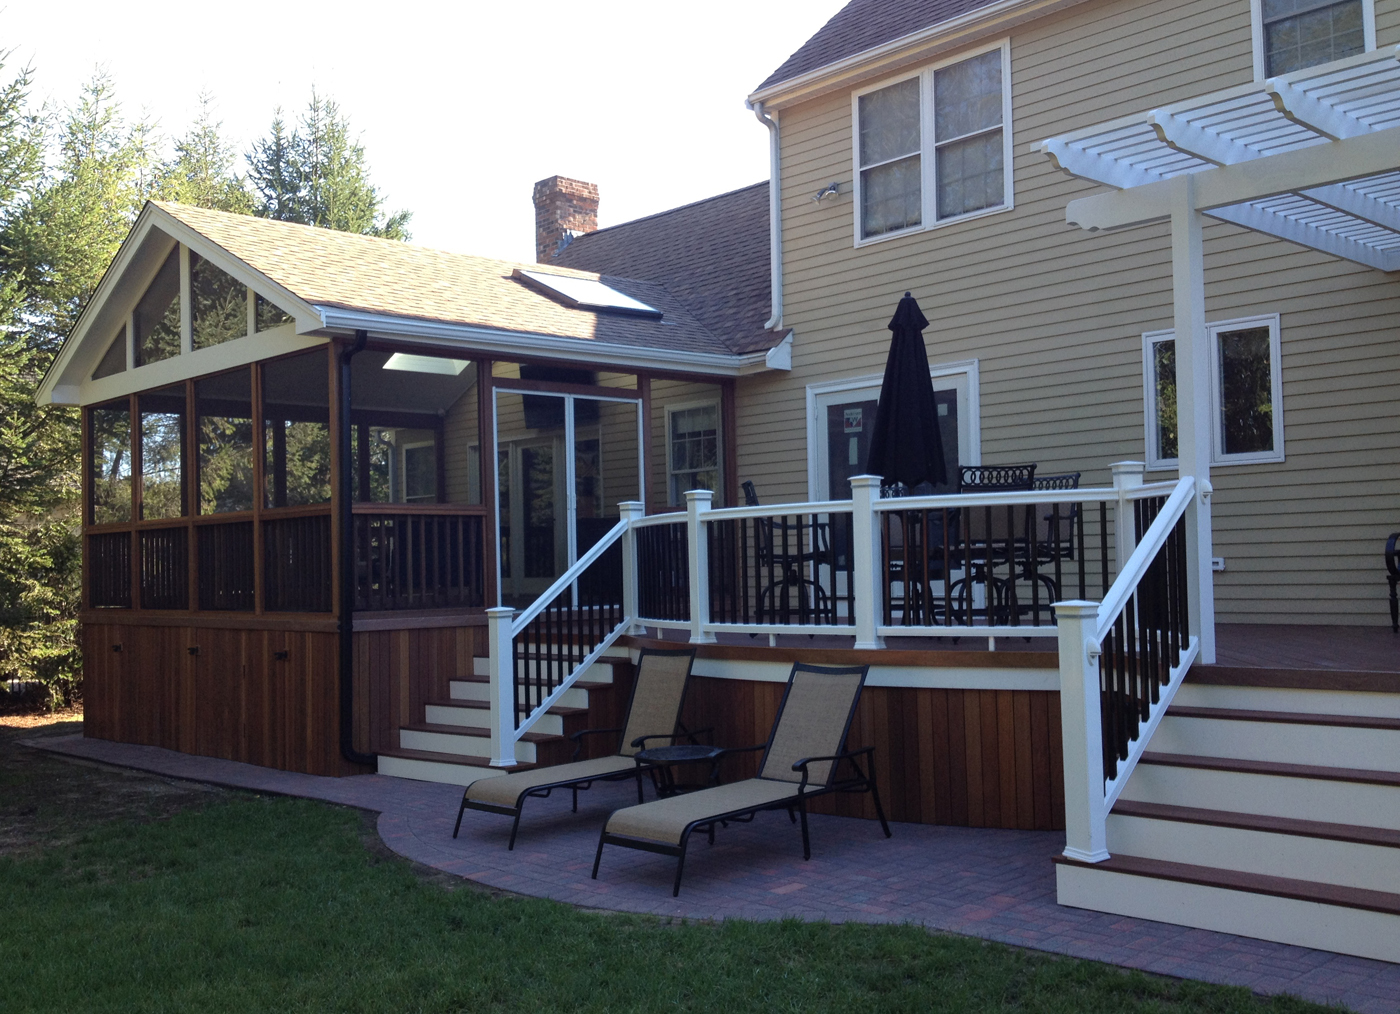 Archadeck of salt lake deck design ideas archadeck for Deck architecture